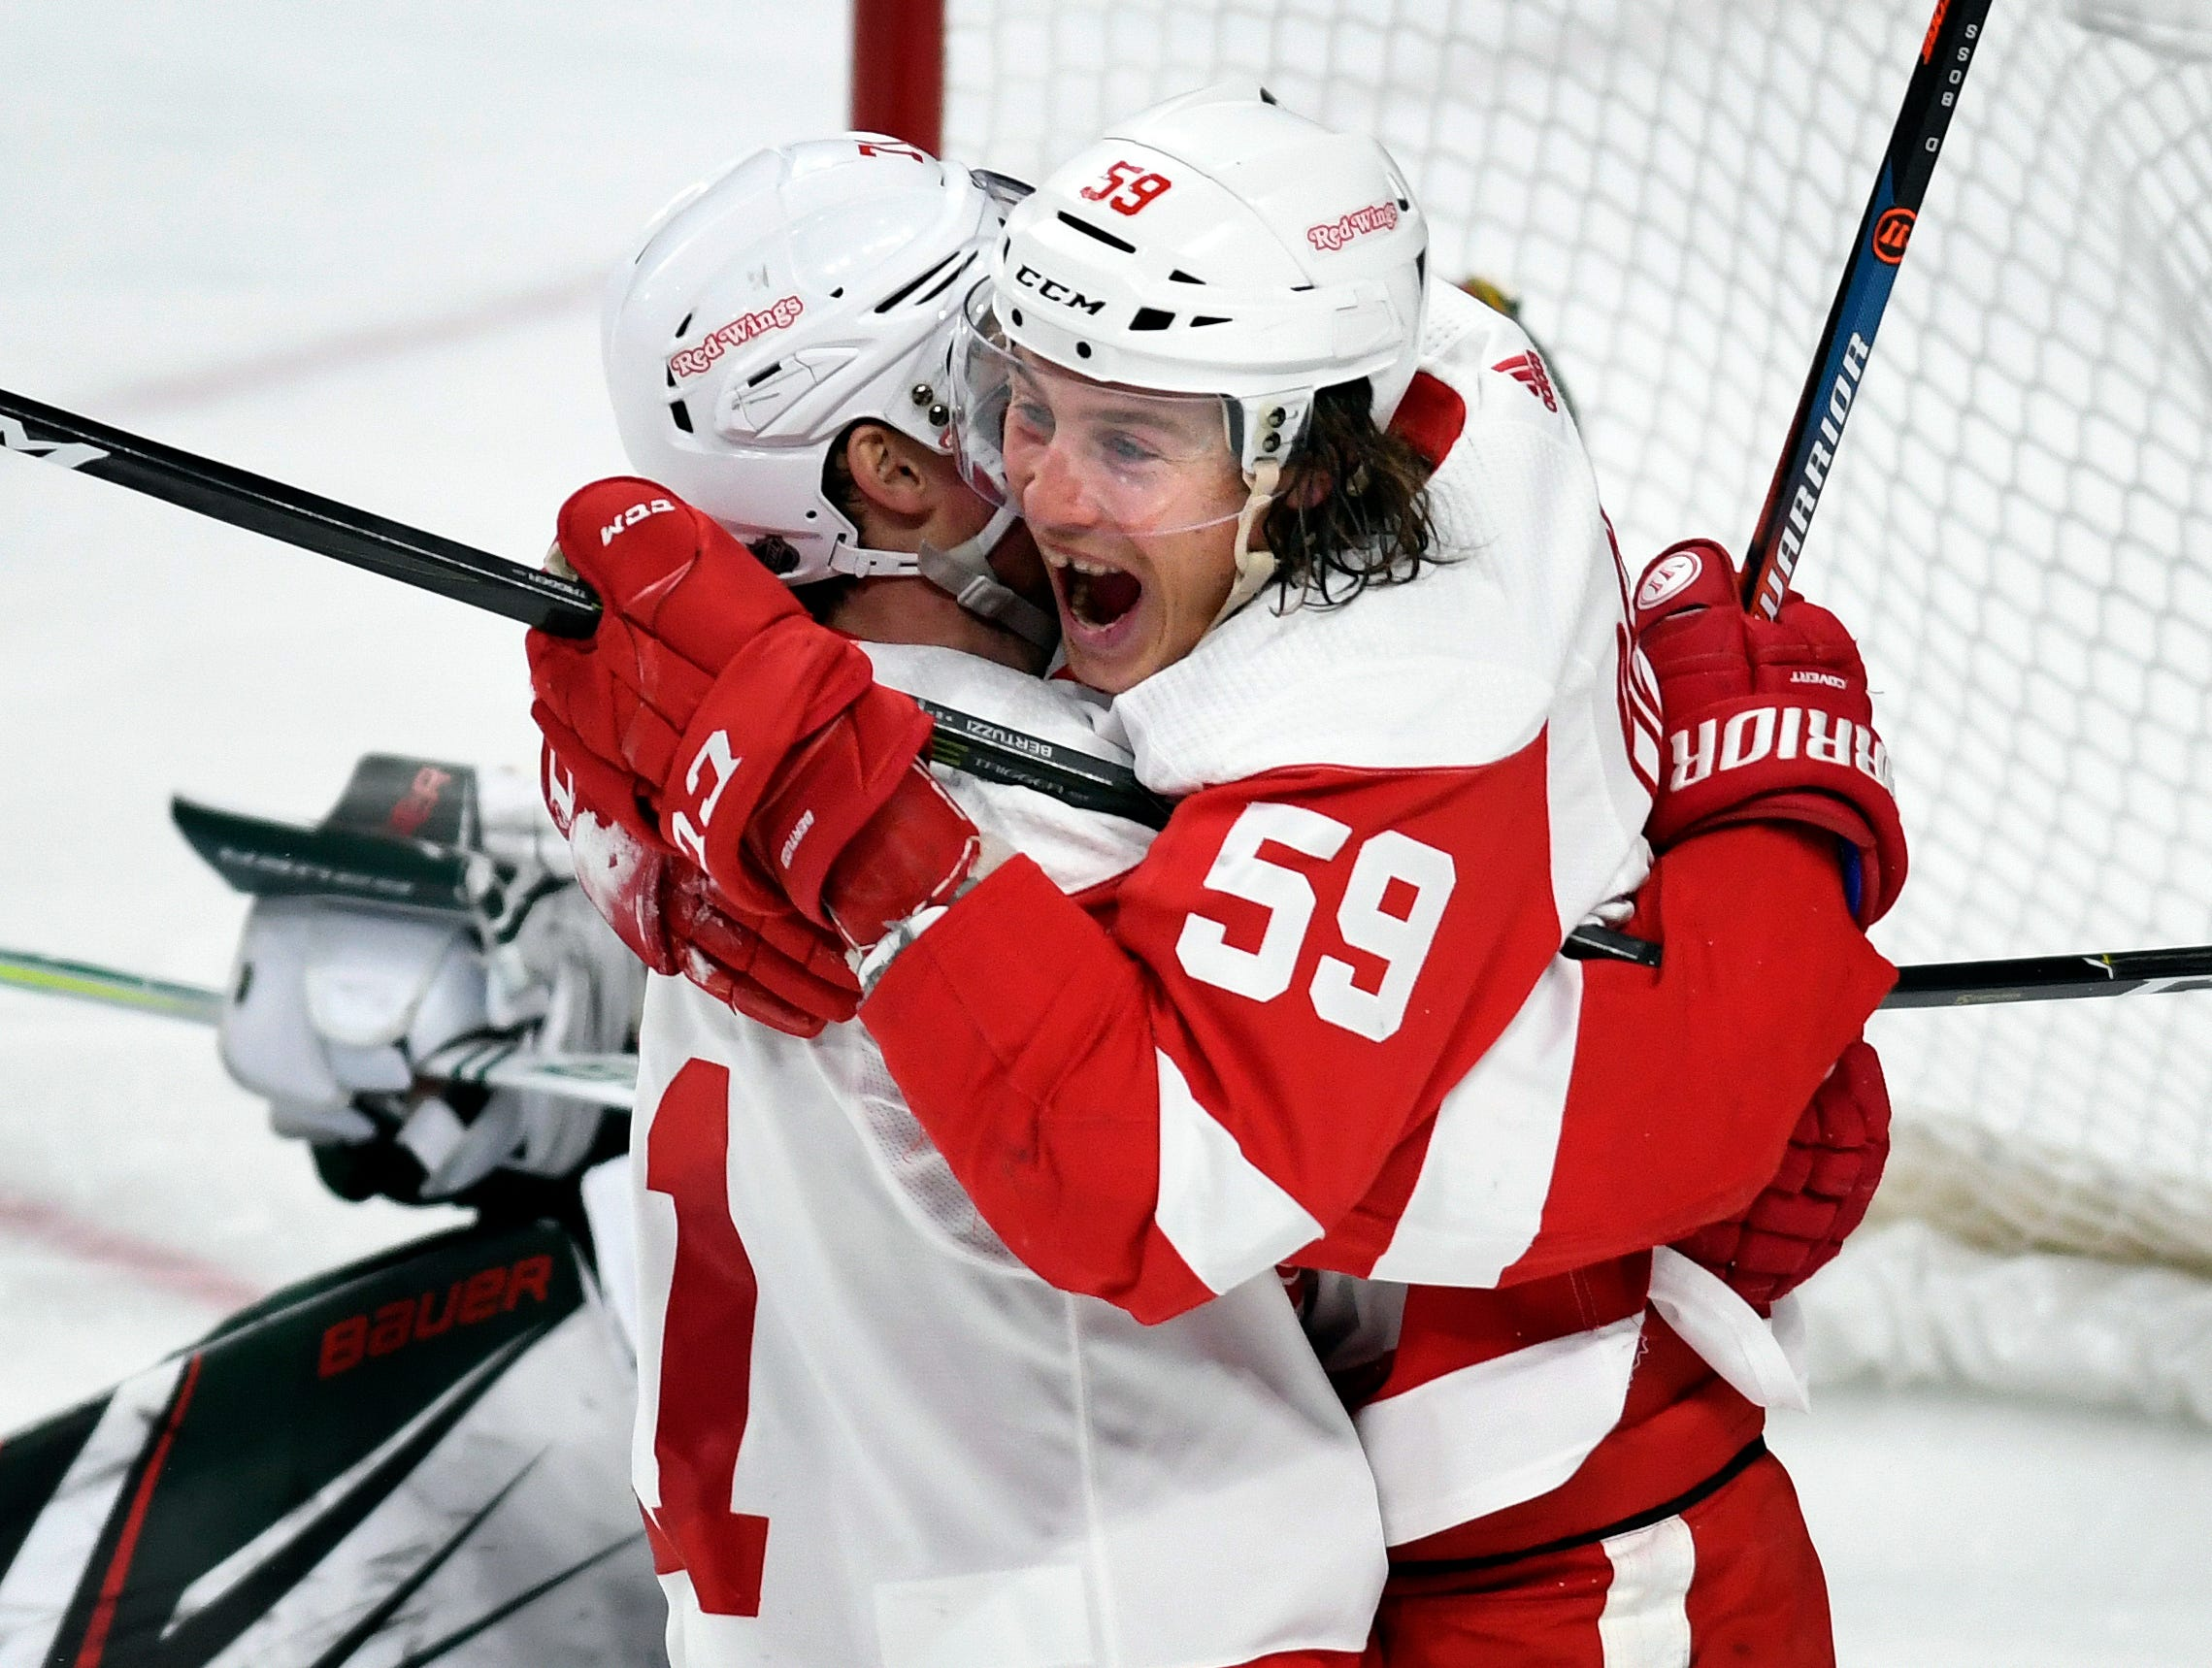 Detroit Red Wings' Dylan Larkin, left, hugs Tyler Bertuzzi (59) after he scored his third goal against the Minnesota Wild for a hat trick during the third period of an NHL hockey game Saturday, Jan. 12, 2019, in St. Paul, Minn. (AP Photo/Tom Olmscheid)